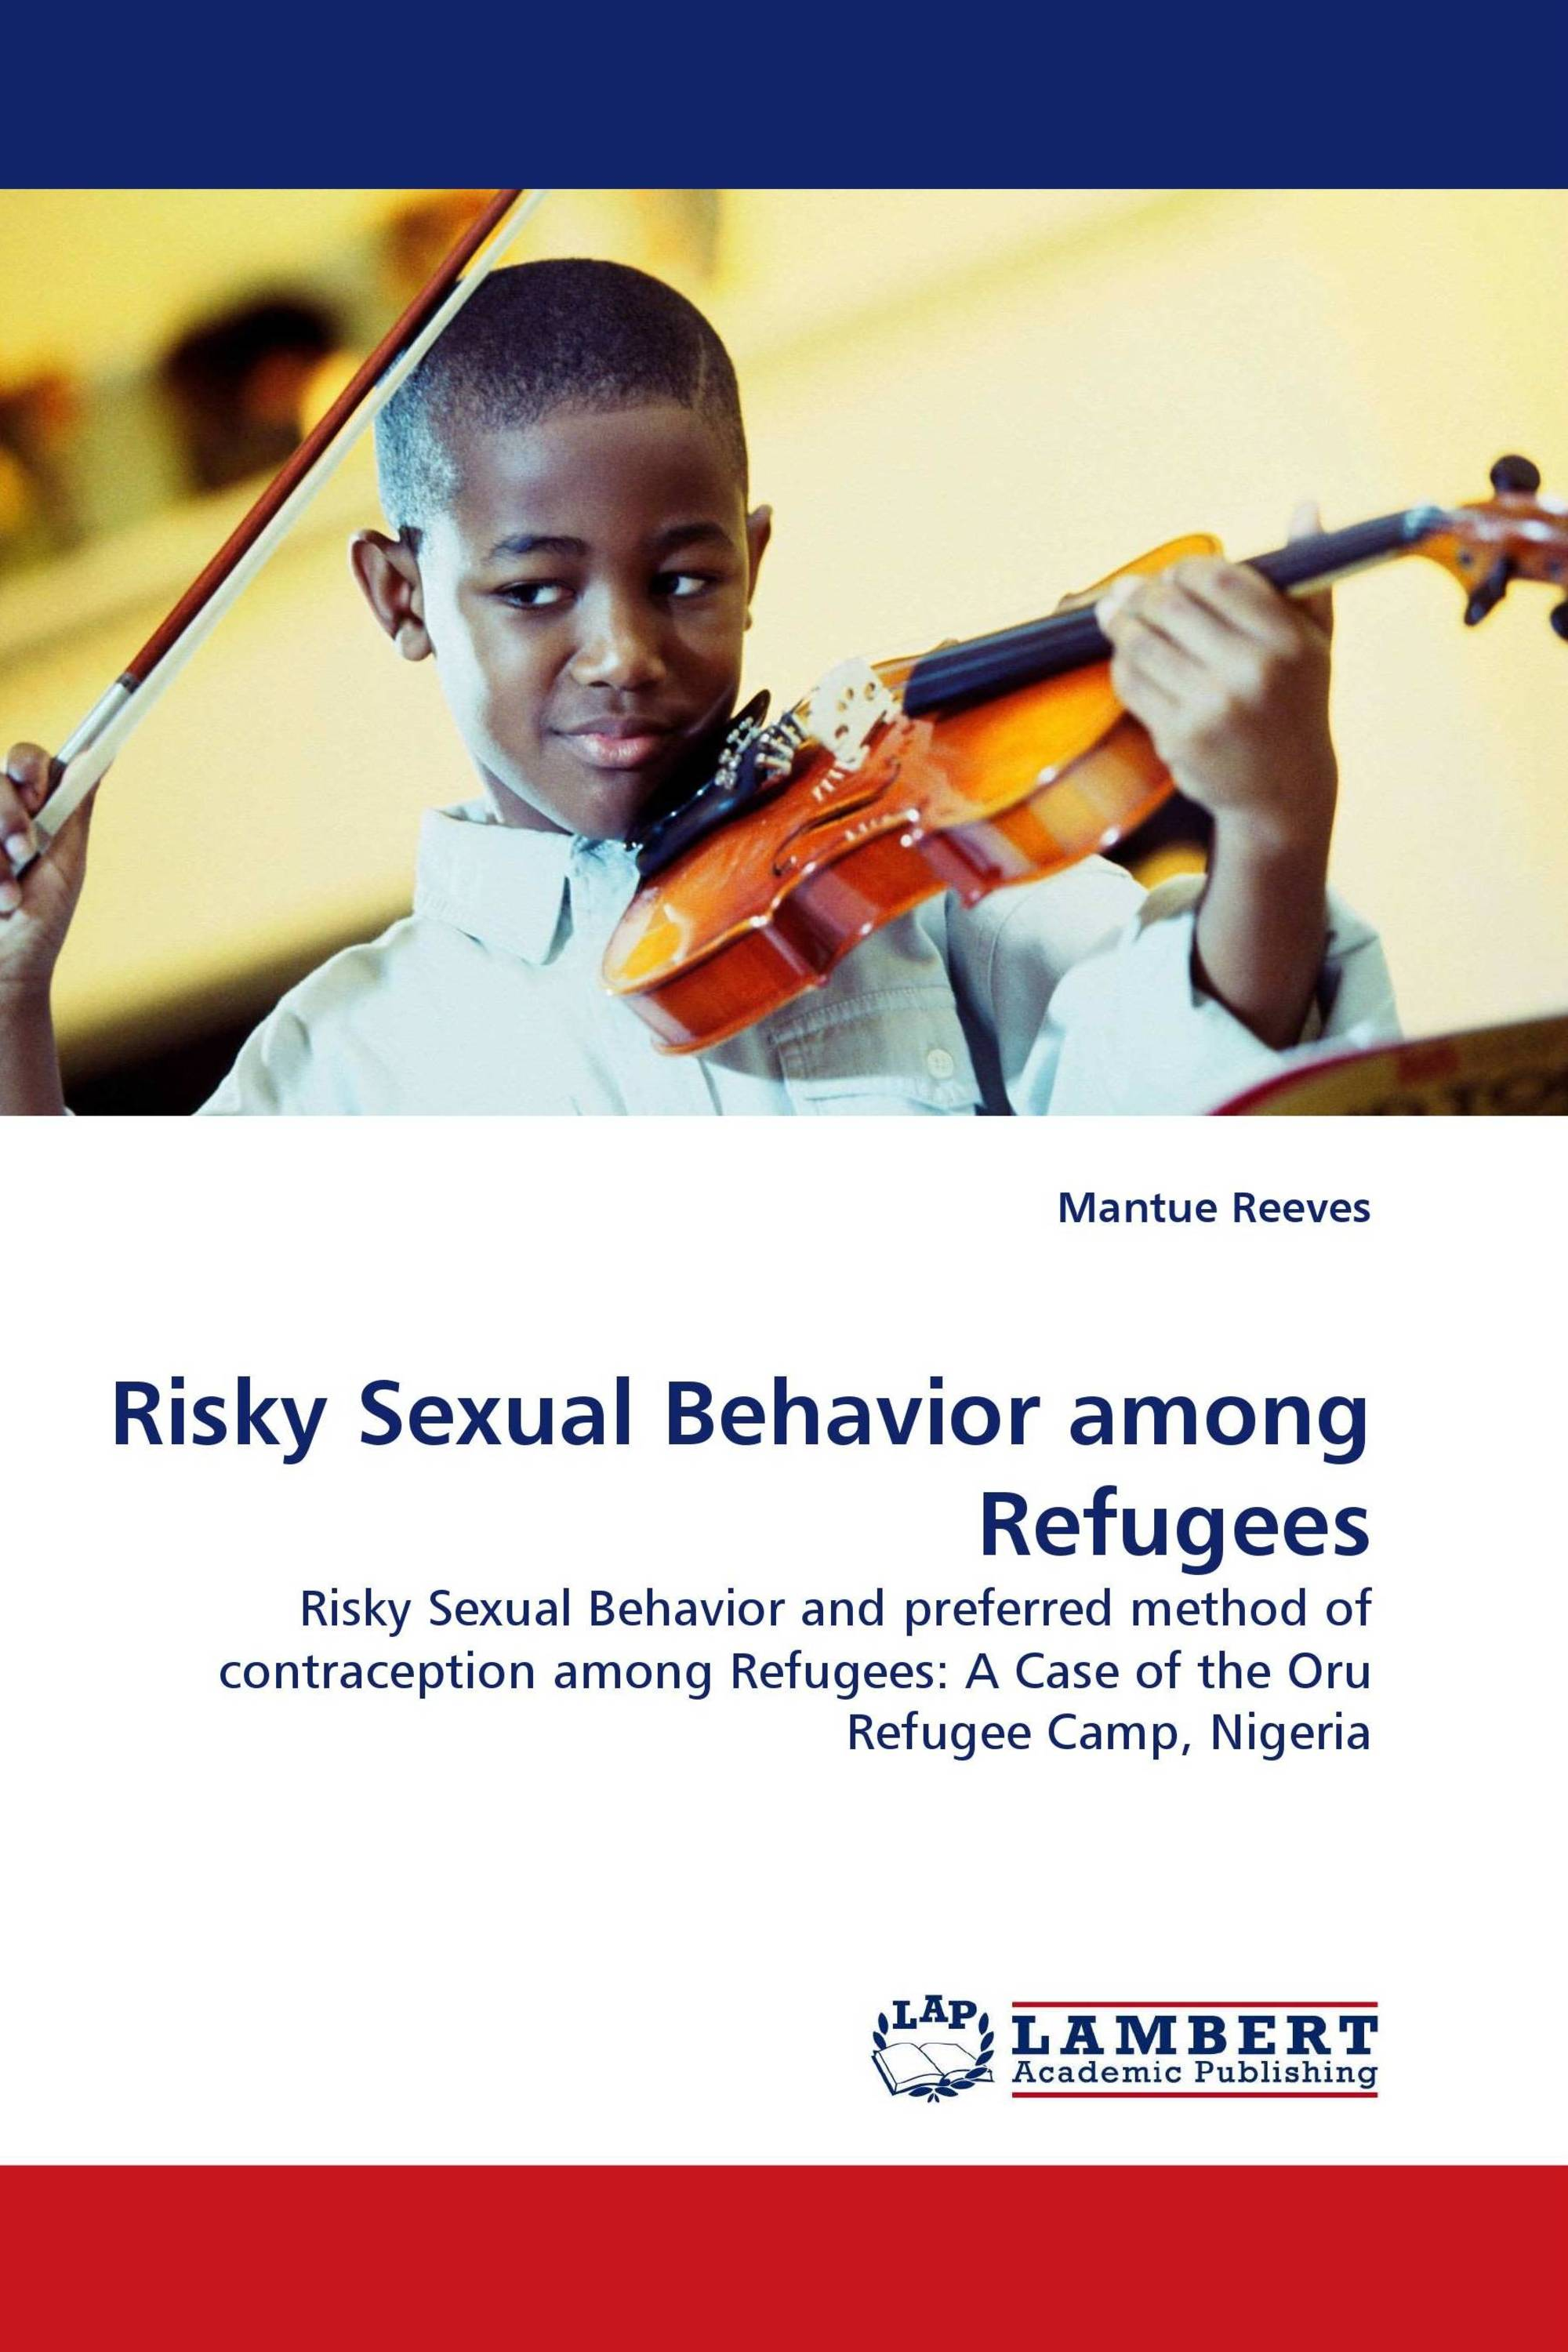 Risk sexual behavior